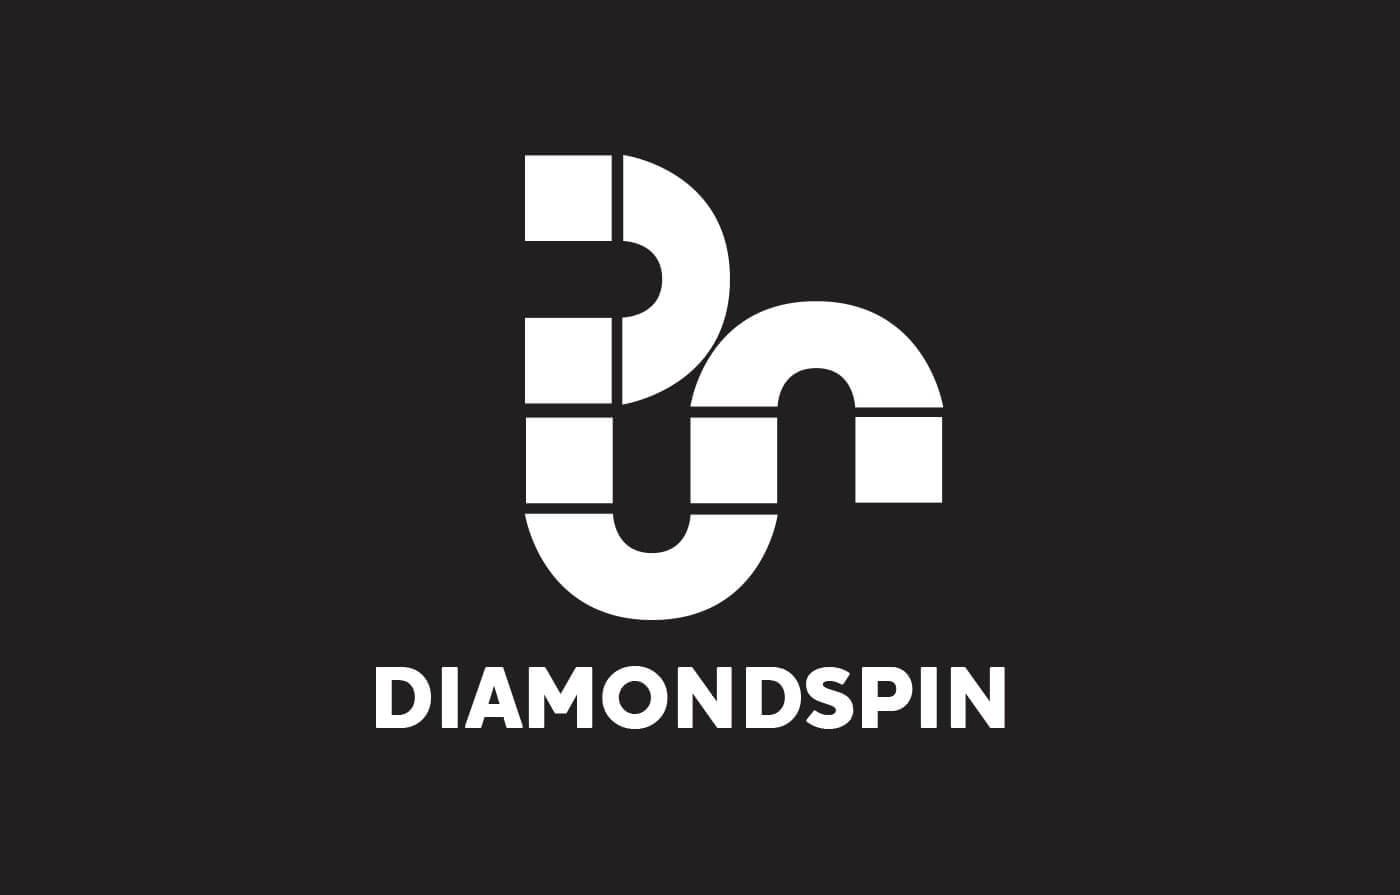 2010 Diamondspin logo